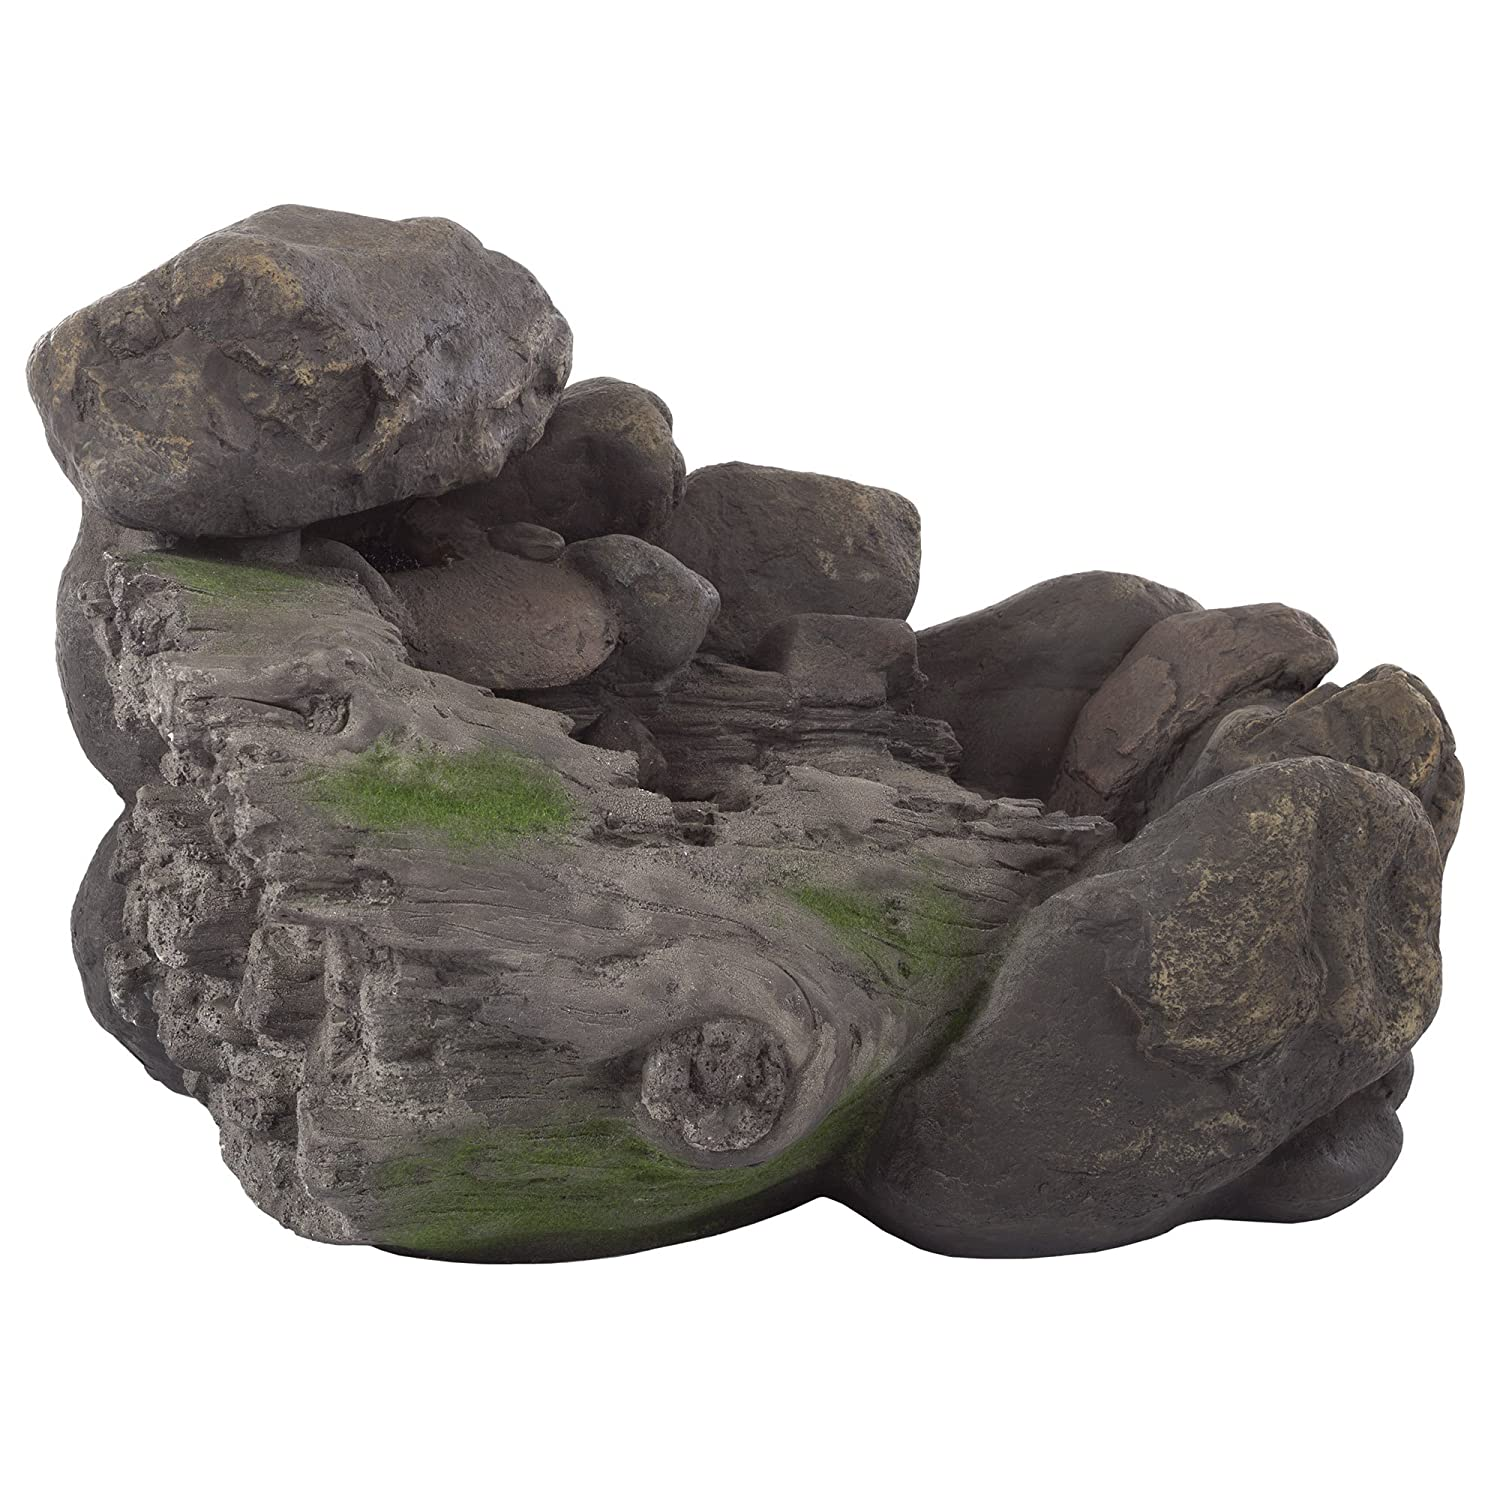 Outdoor Water Fountain Lawn and Garden By Pure Garden 2 Tier Lion Head Fountain With Natural Looking Stone and Soothing Sound for Decor on Patio